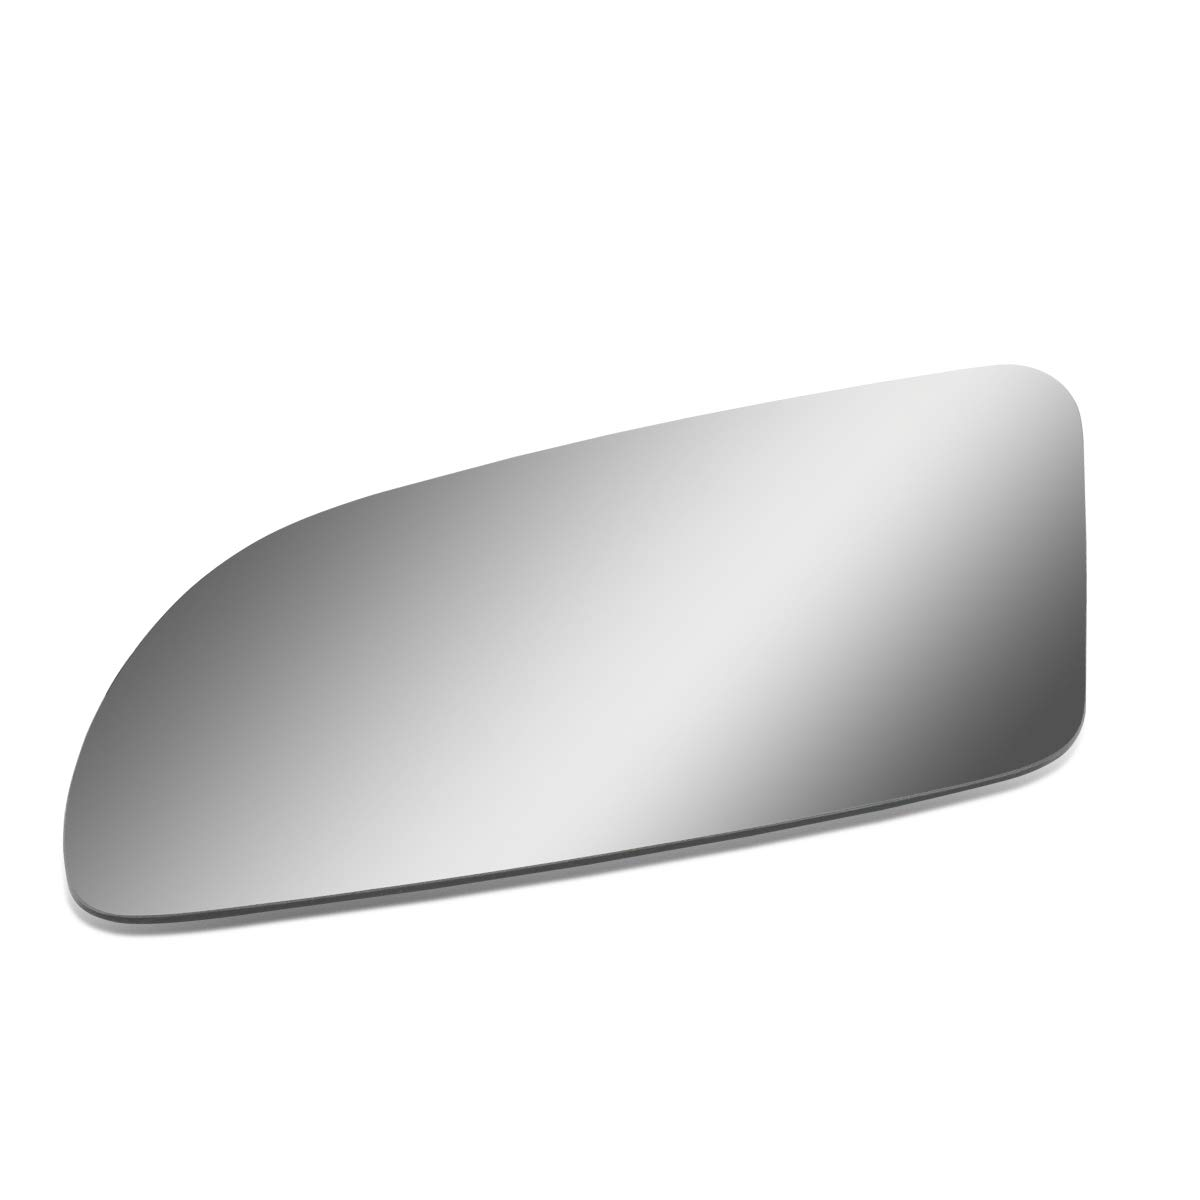 Driver//Left Side Door Rear View Mirror Glass Lens Replacement for 1978-1996 Chevy Monte Carlo//Corvette//Pontiac Fiero